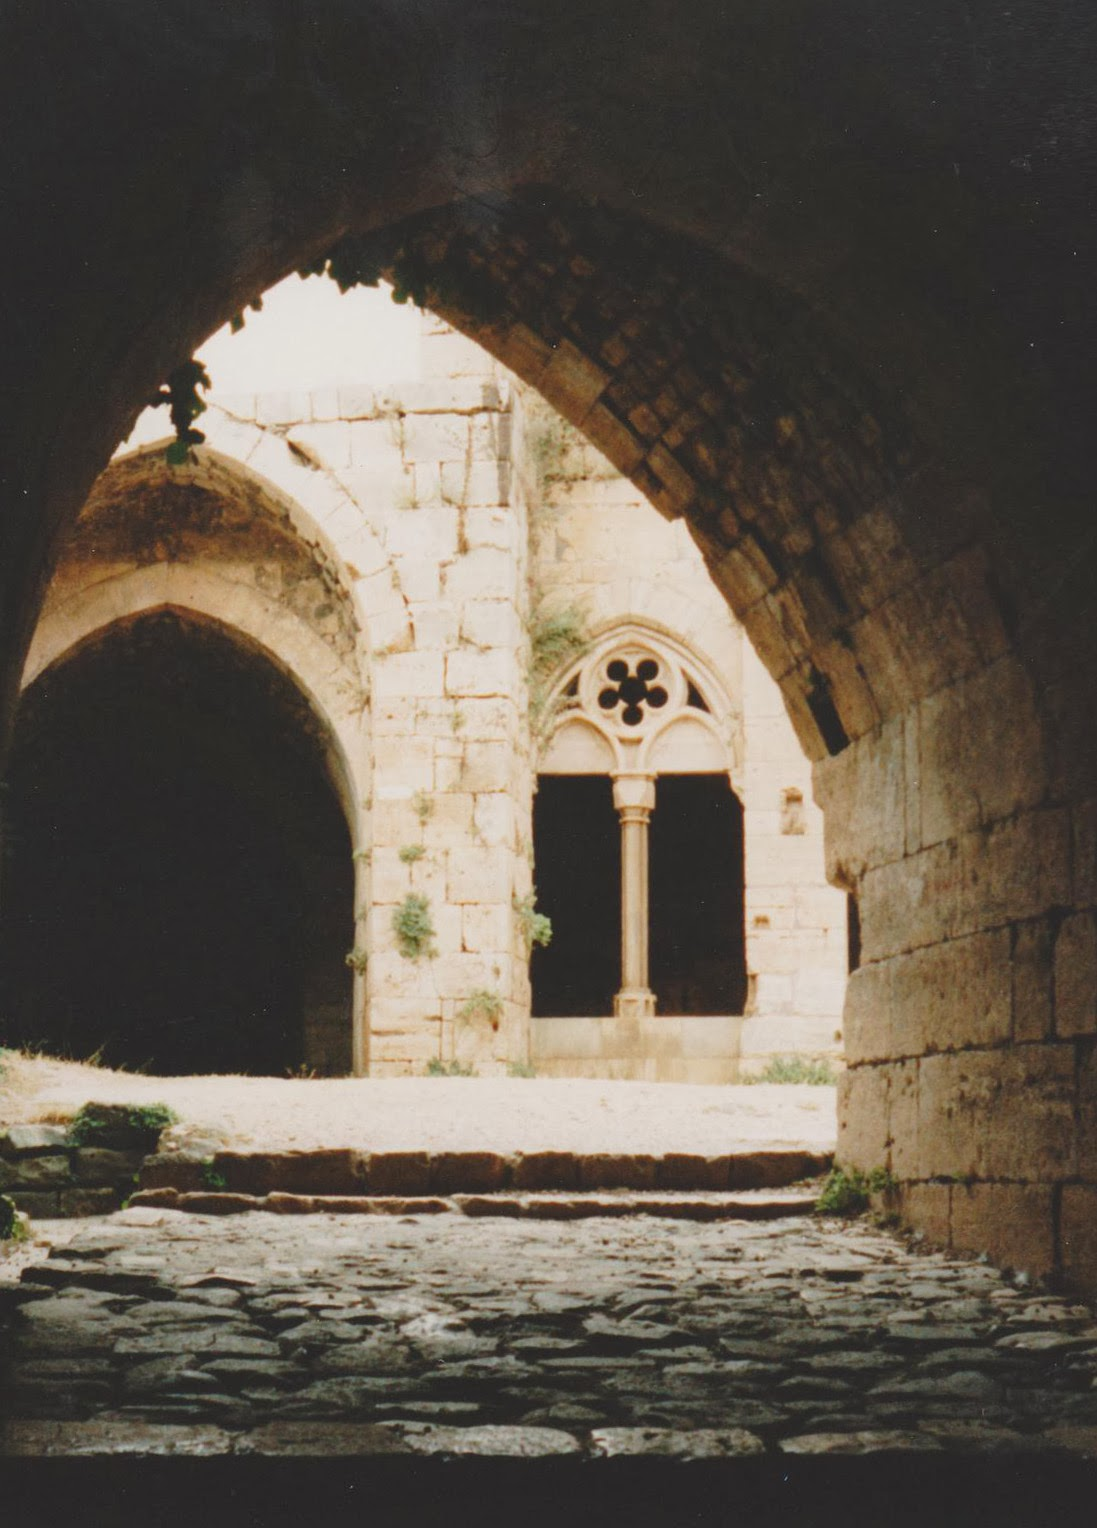 Another interior image of Krak